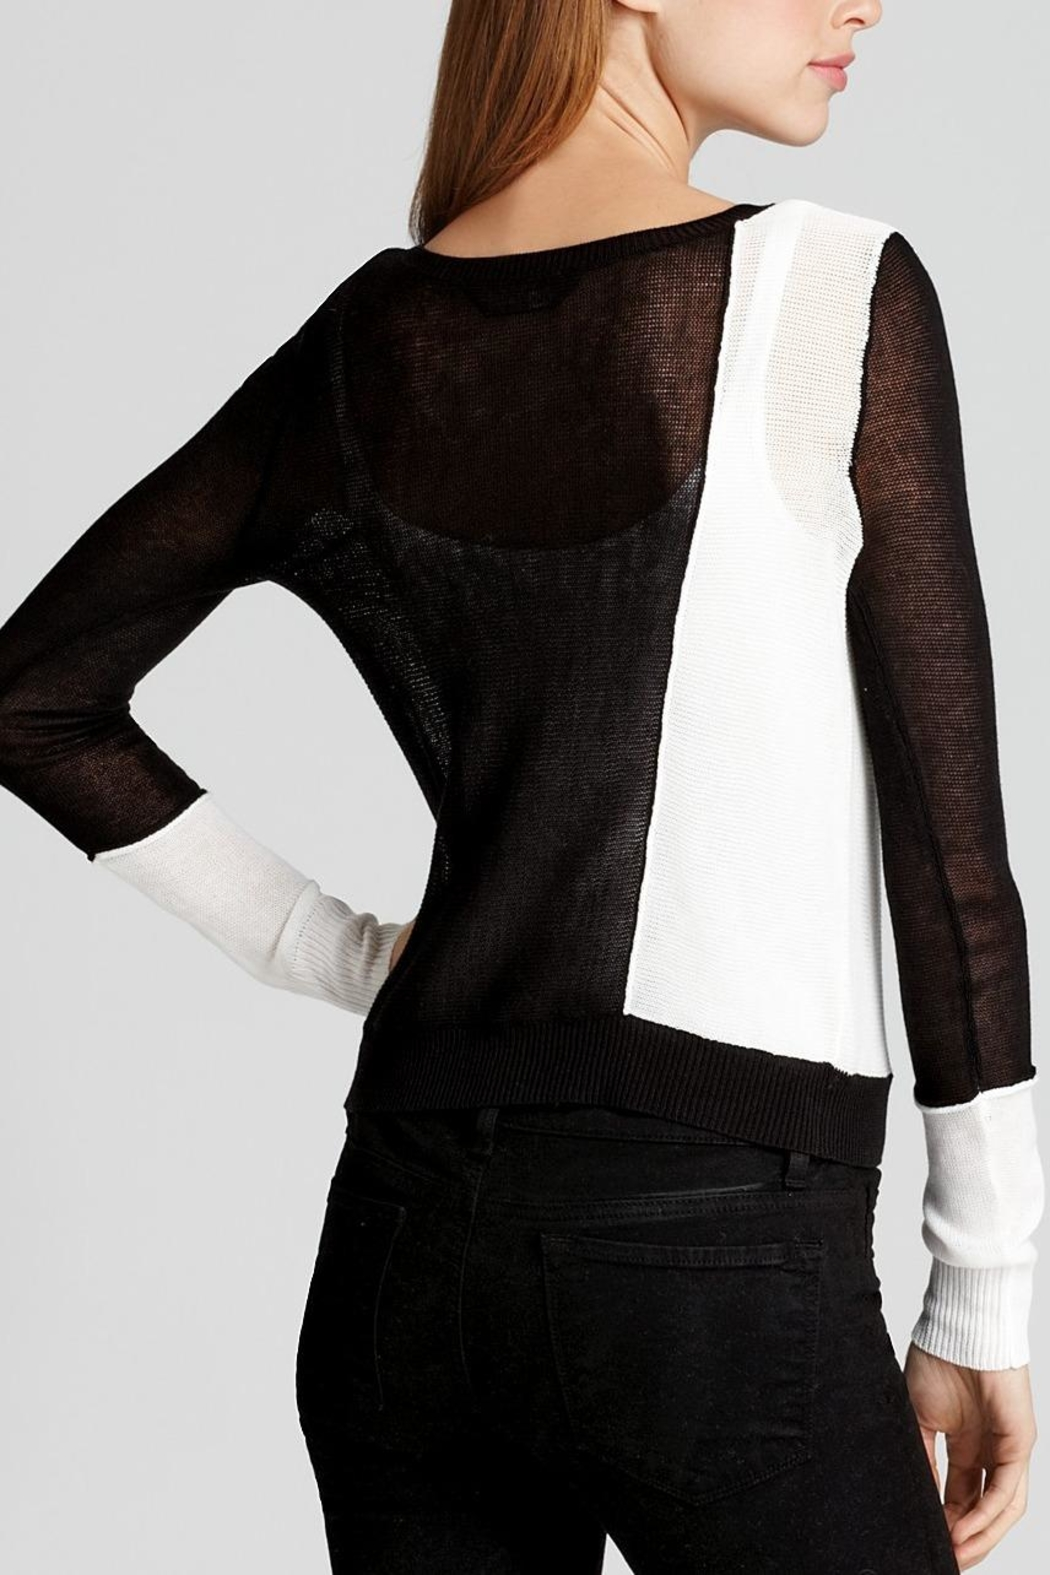 BCBG Max Azria Julian Sweater - Front Full Image